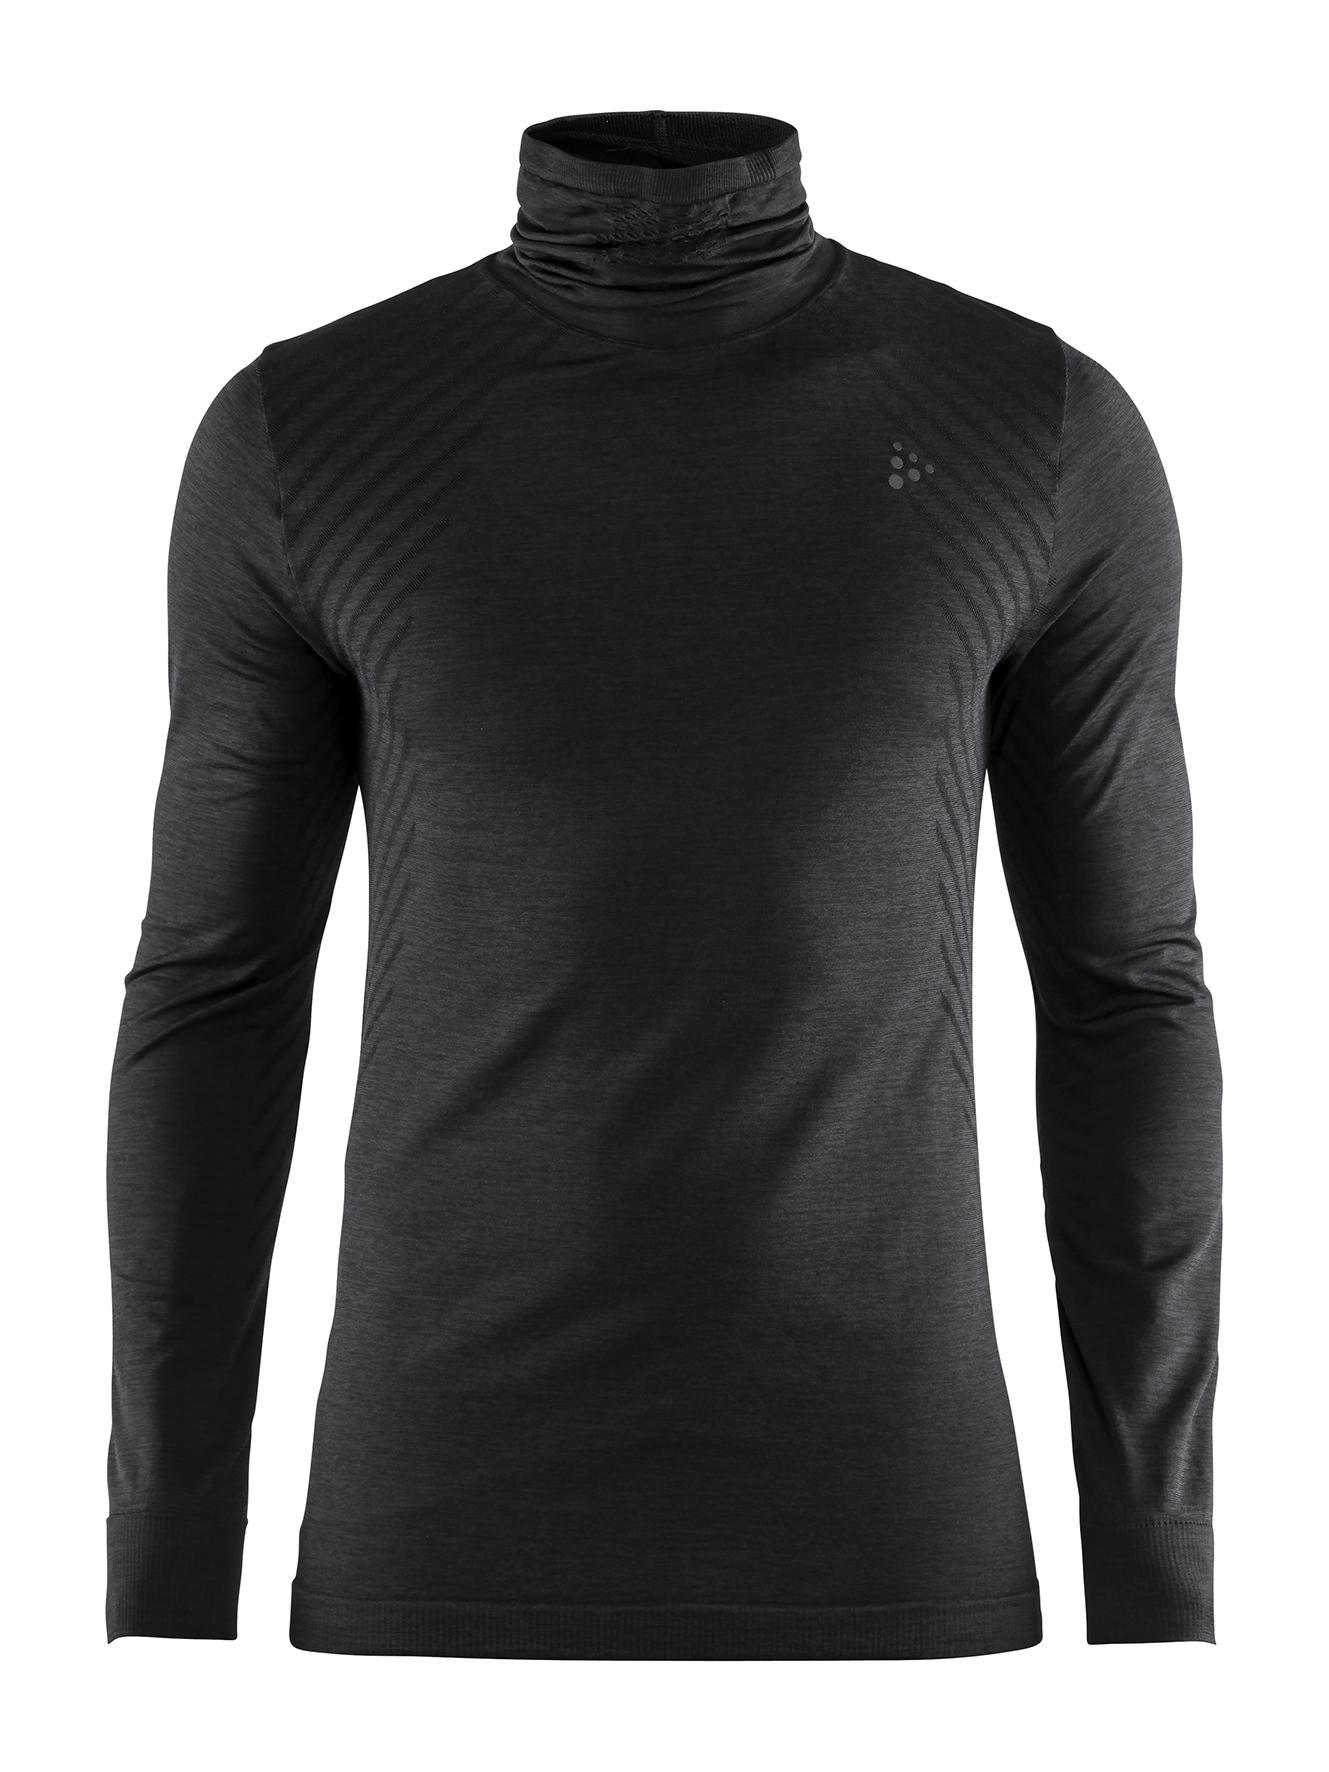 Fuseknit Comfort Turtleneck Man M (B99000 BLACK) -> /media/download/1906599_m_99000.jpg